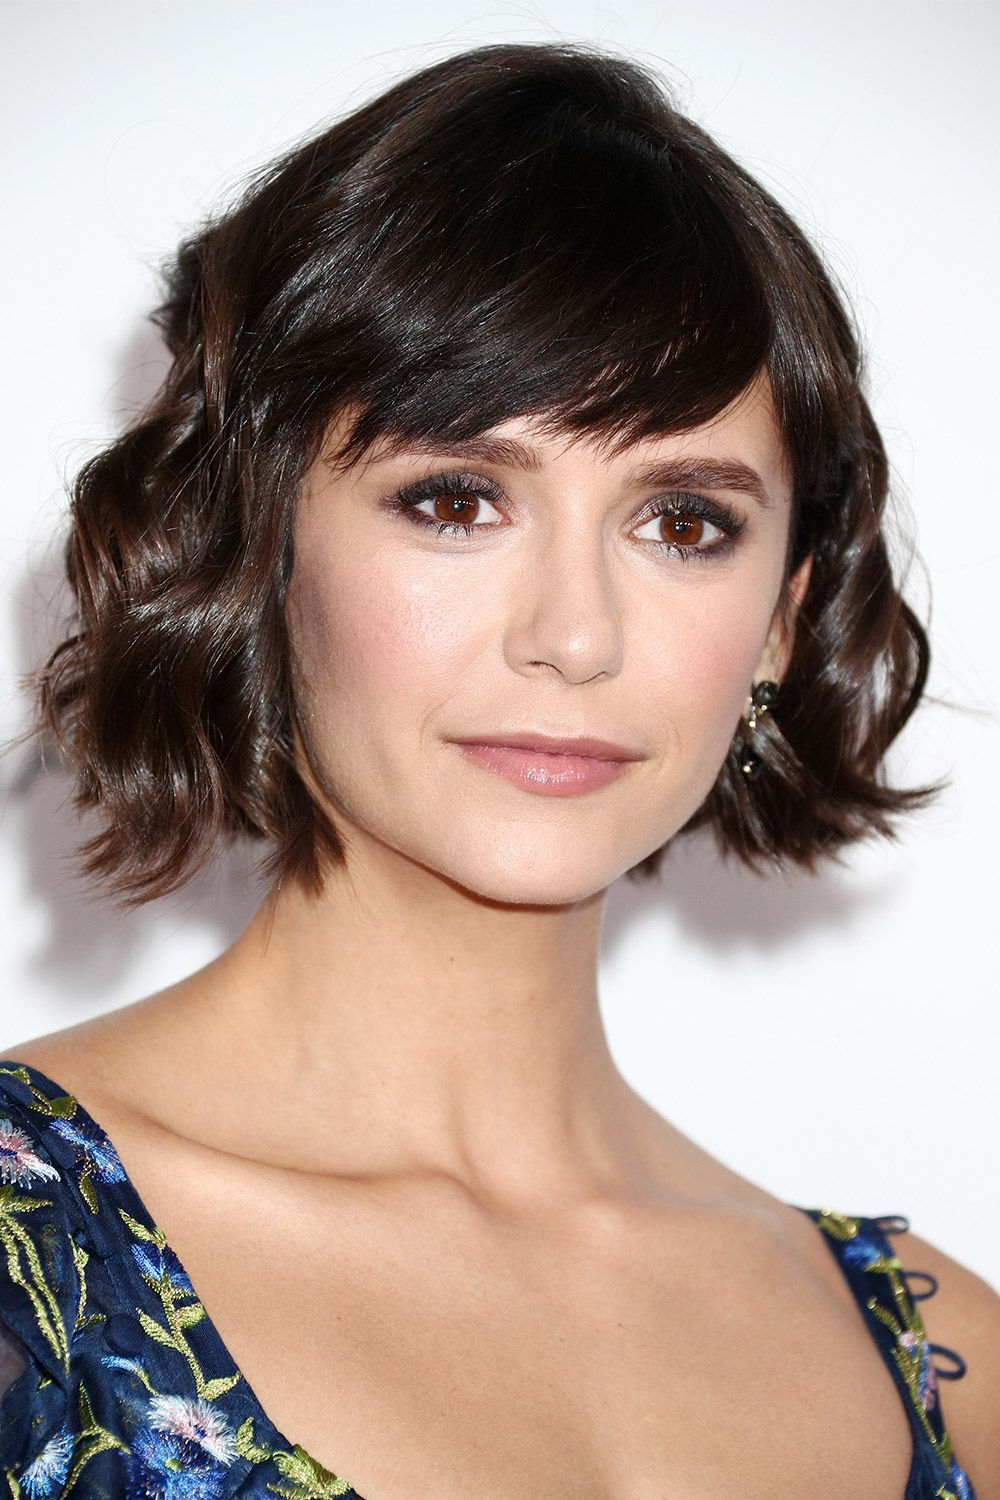 70 Best Bob Styles Of 2019 – Bob Haircuts & Hairstyles For Women Intended For Elegant Short Bob Haircuts (Gallery 10 of 20)